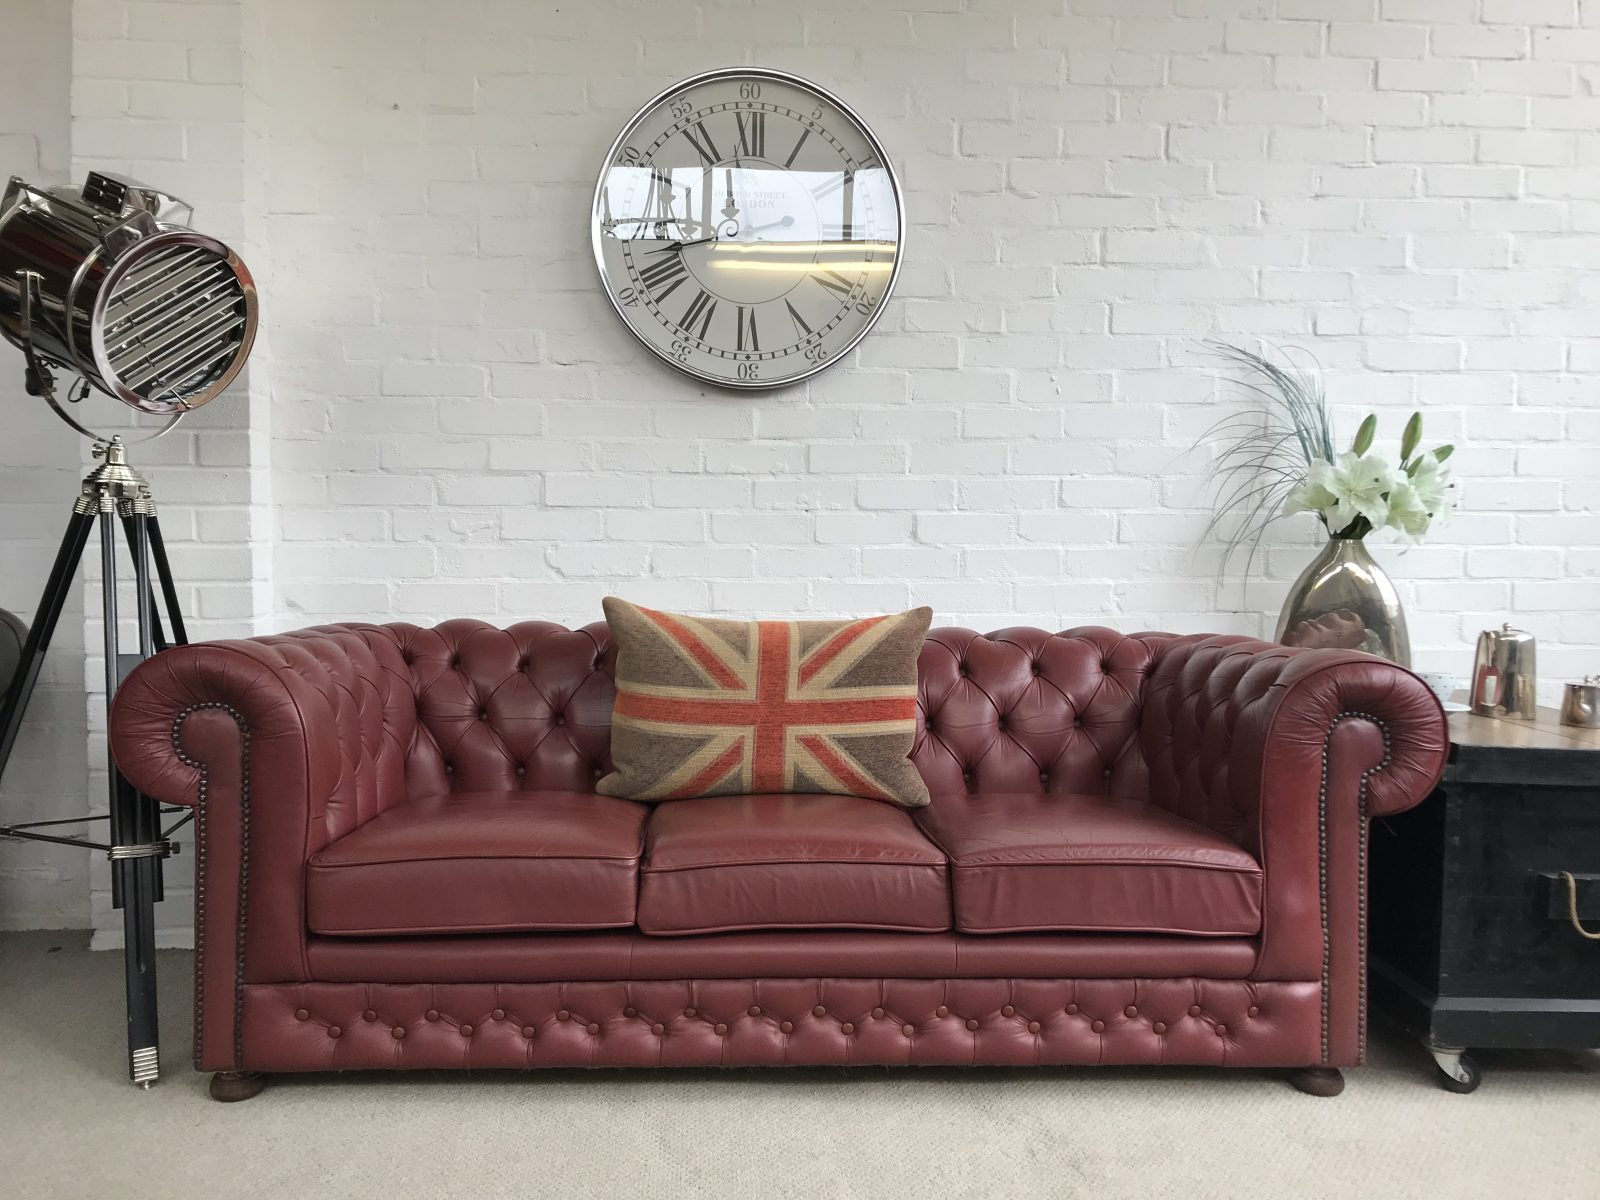 Vintage Chesterfield Sofa.(Matching 2 Seater Available)